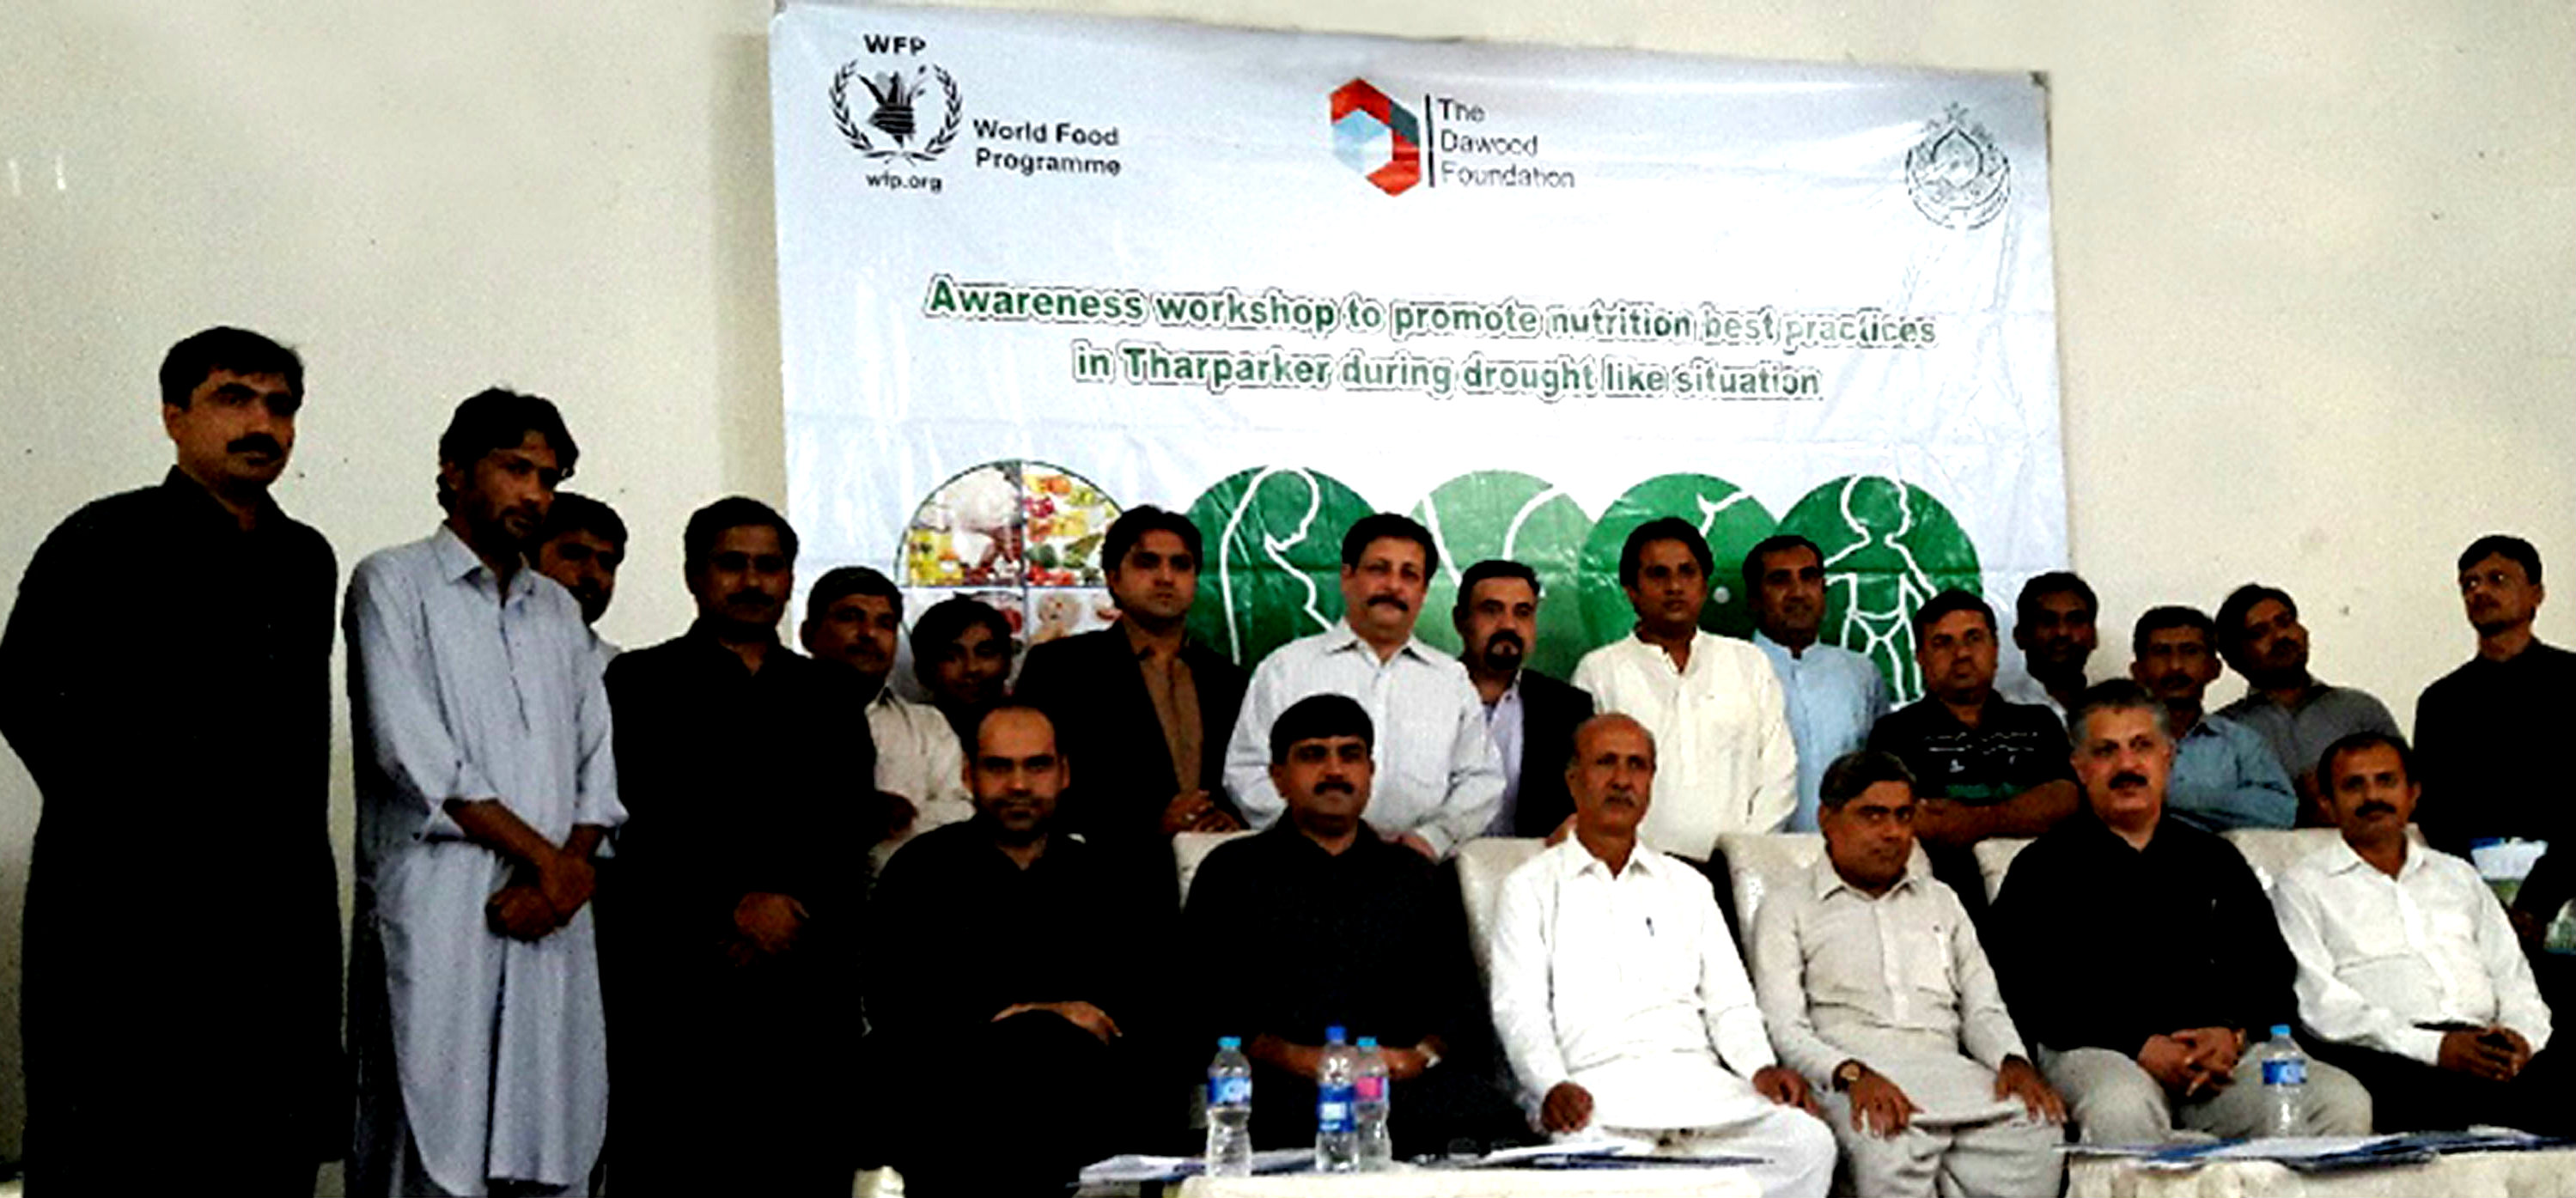 the-dawood-foundation-in-collaboration-with-world-food-programme-english-photo-caption